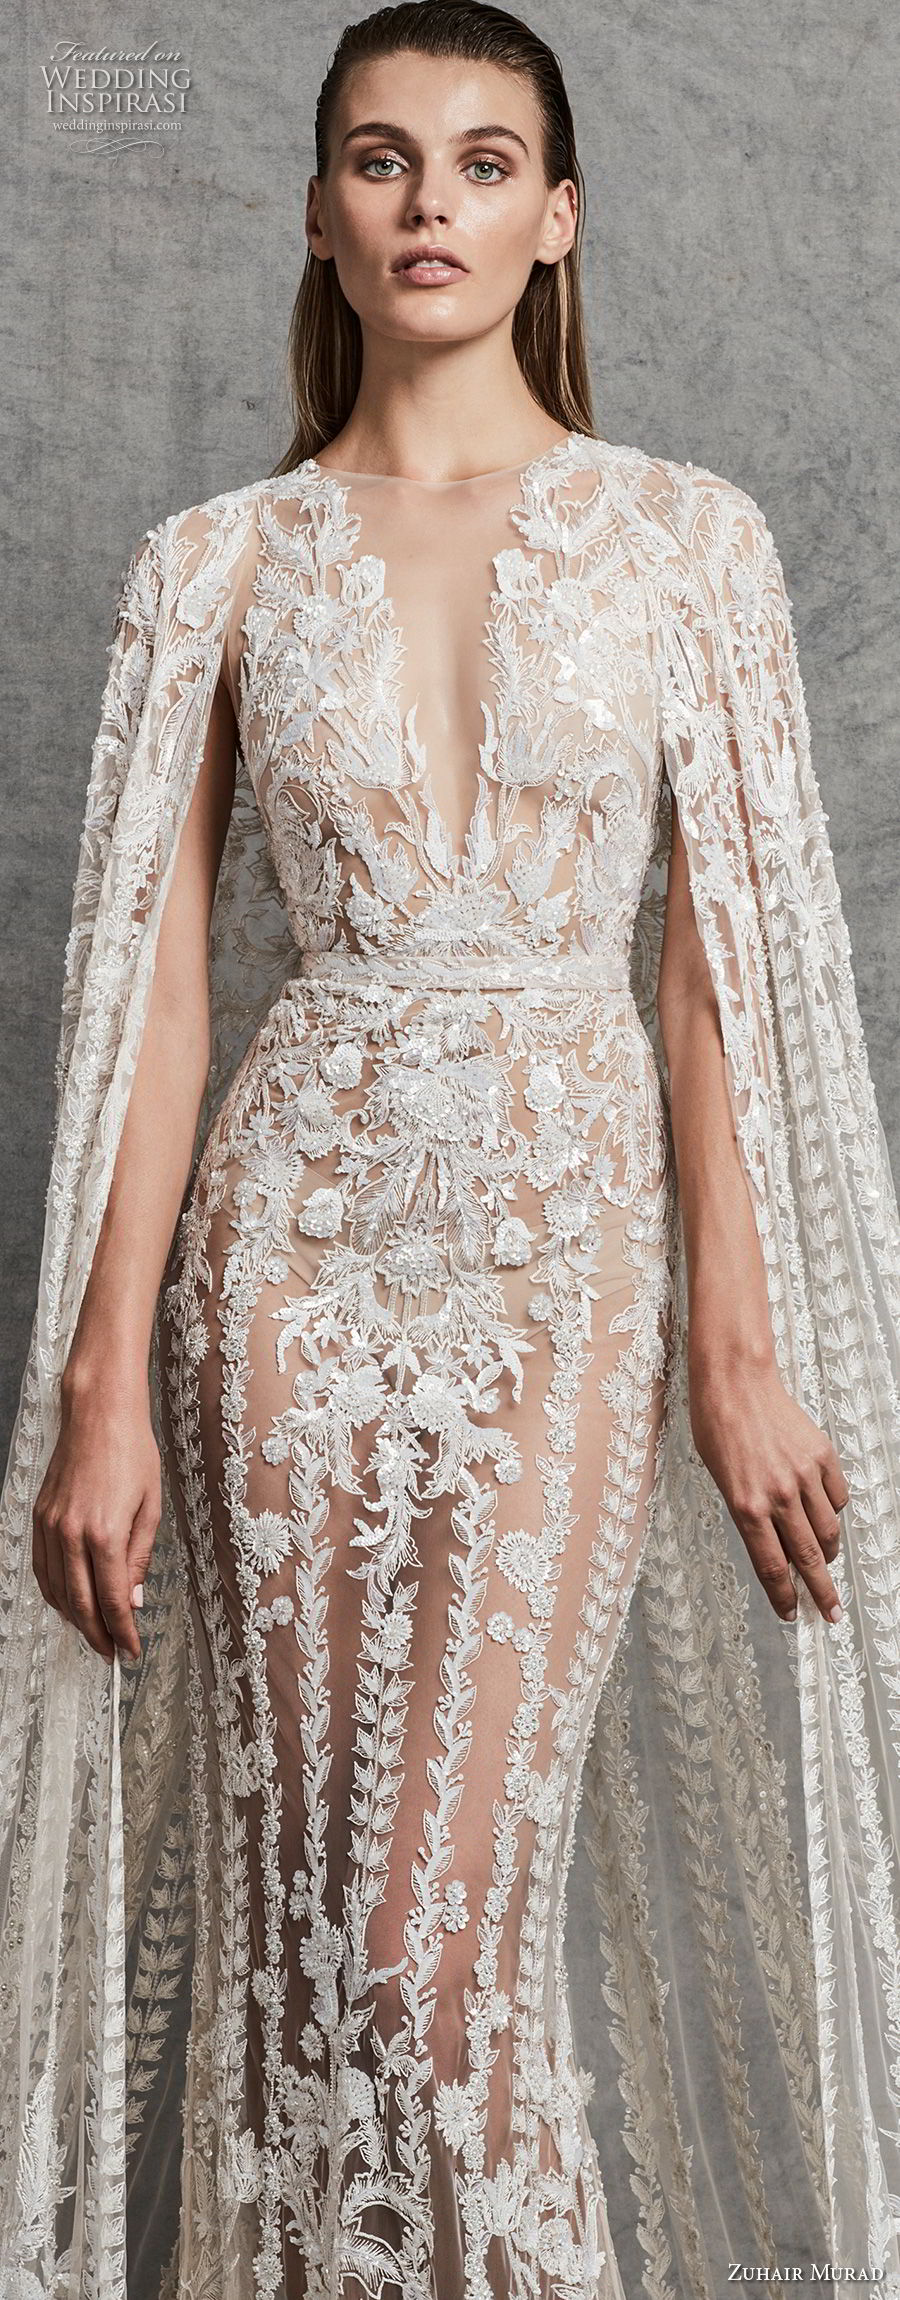 zuhair murad fall 2018 bridal sleeveless illusion bateau deep v neck full embellishment glamorous elegant fit and flare sheath wedding dress with cape sweep train (4) zv